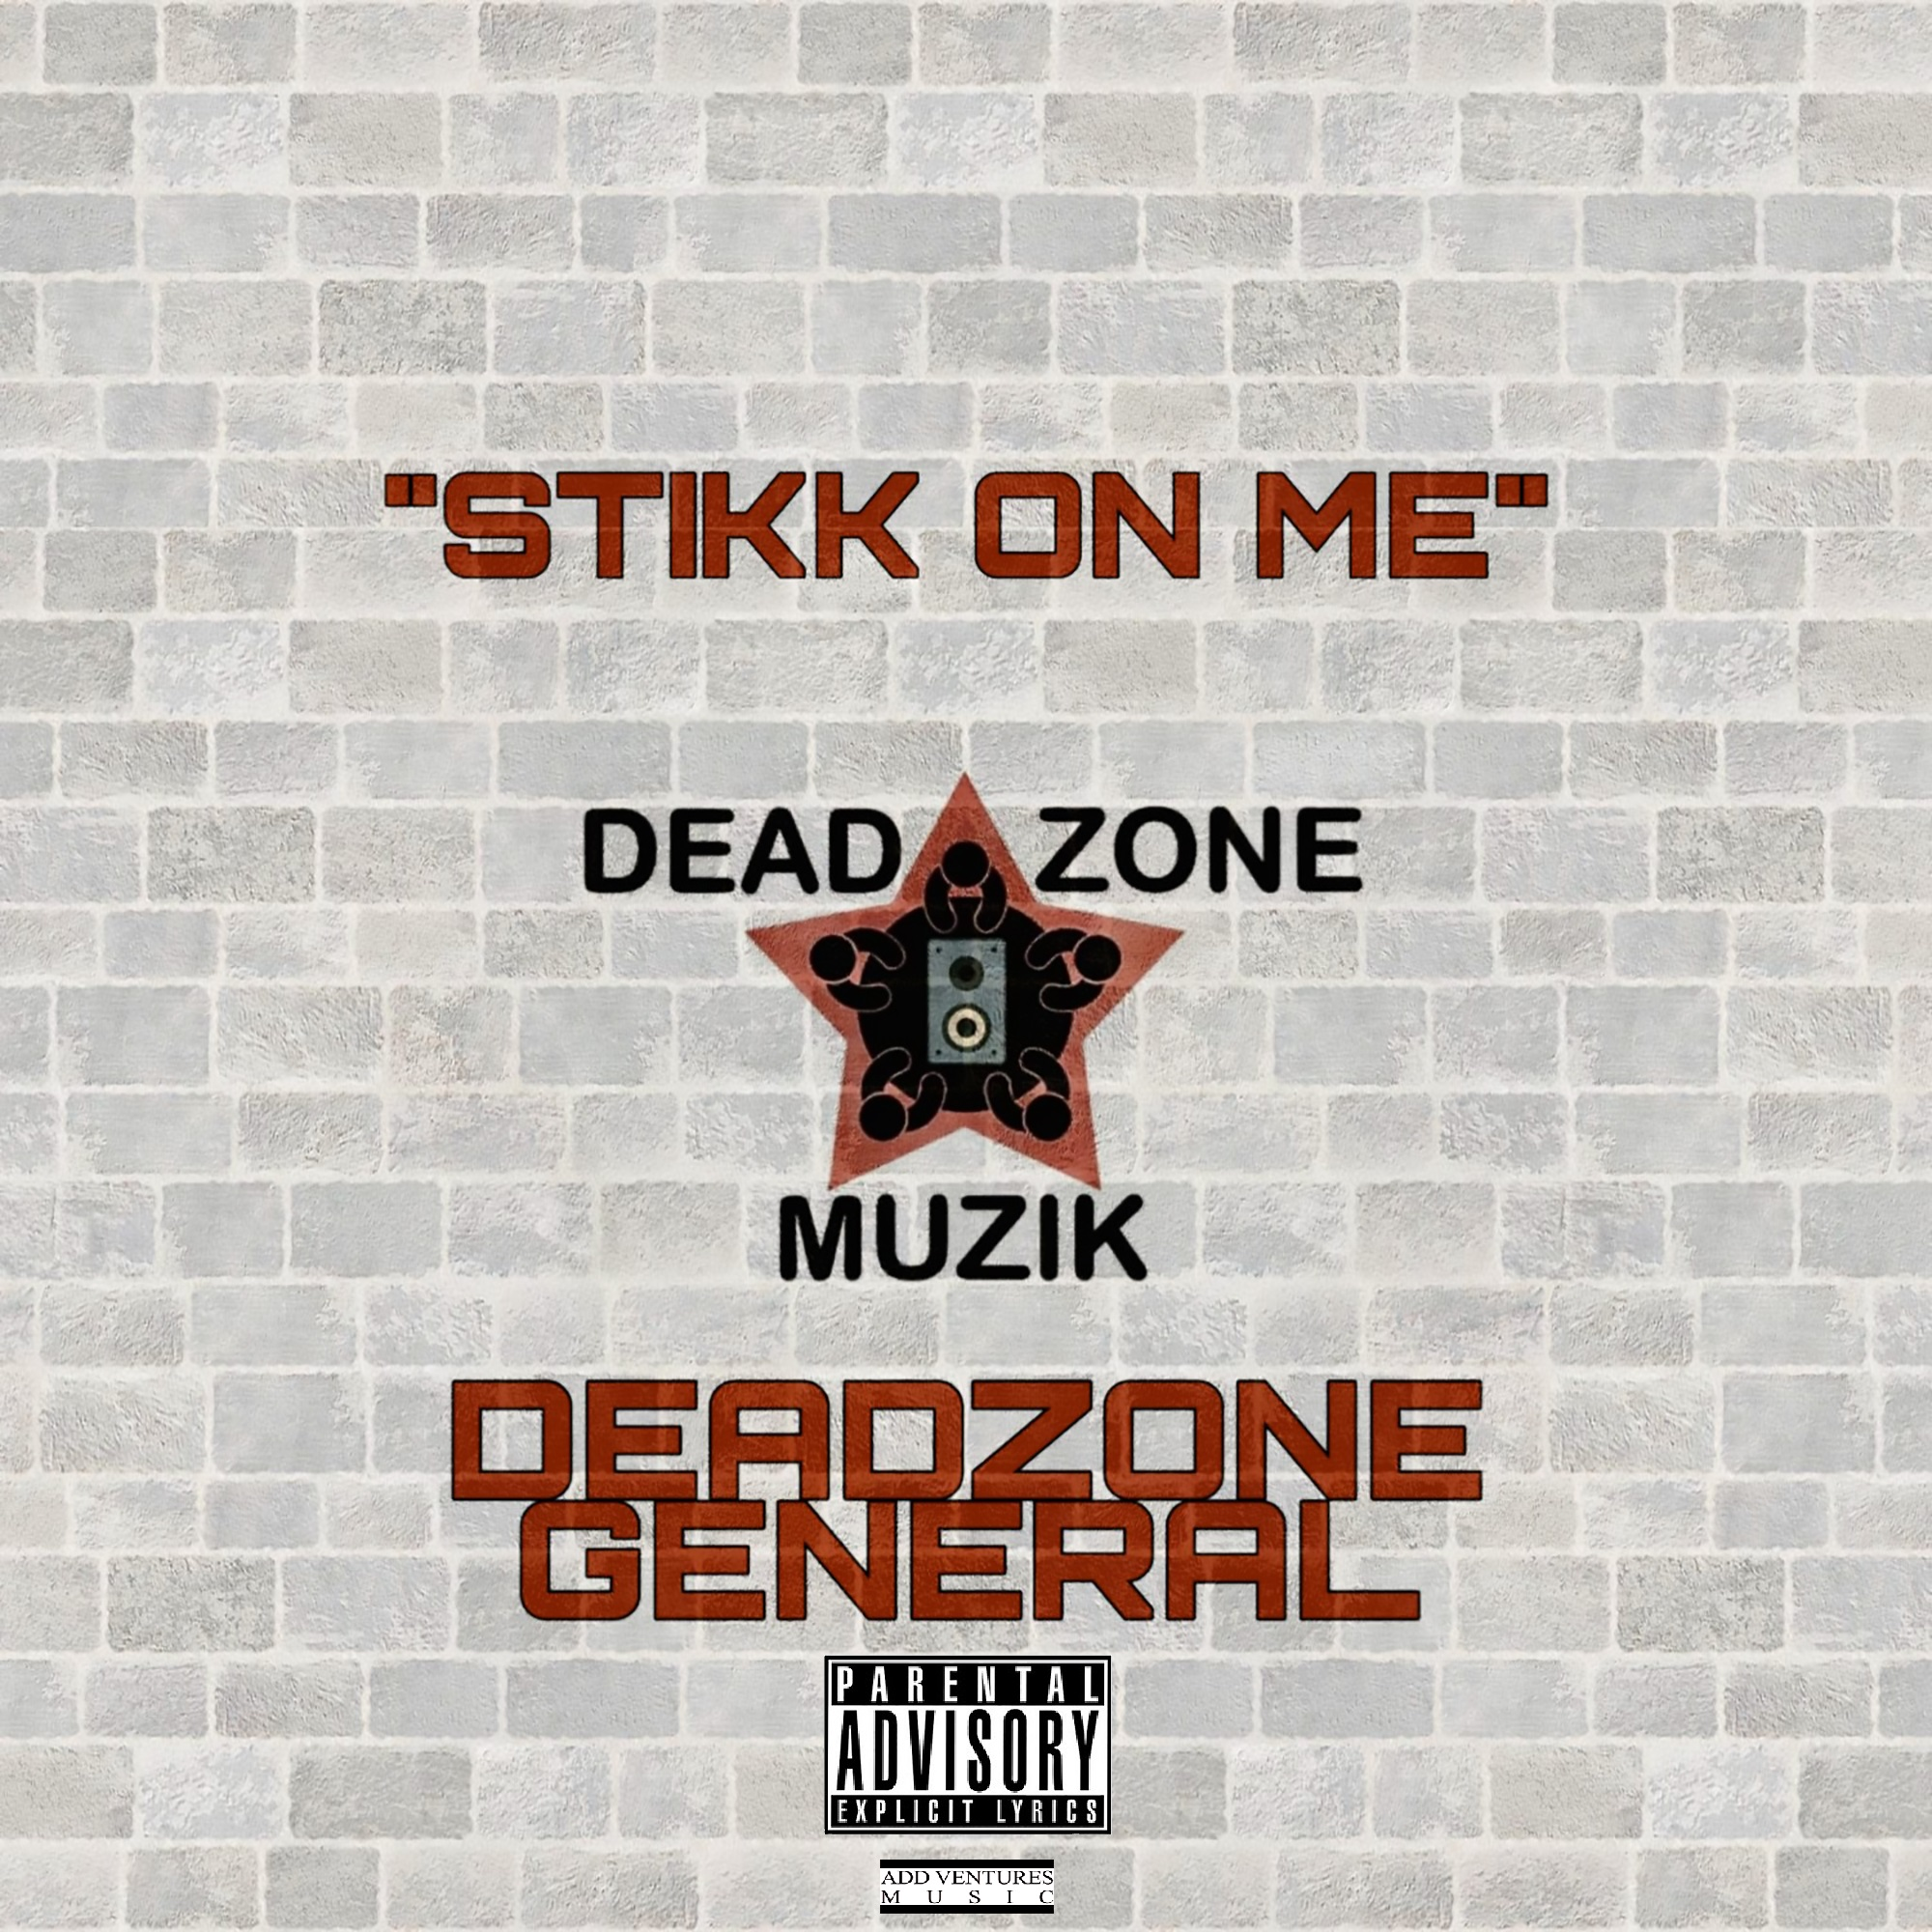 DeadZone General - Stikk On Me  - Explicit.jpg